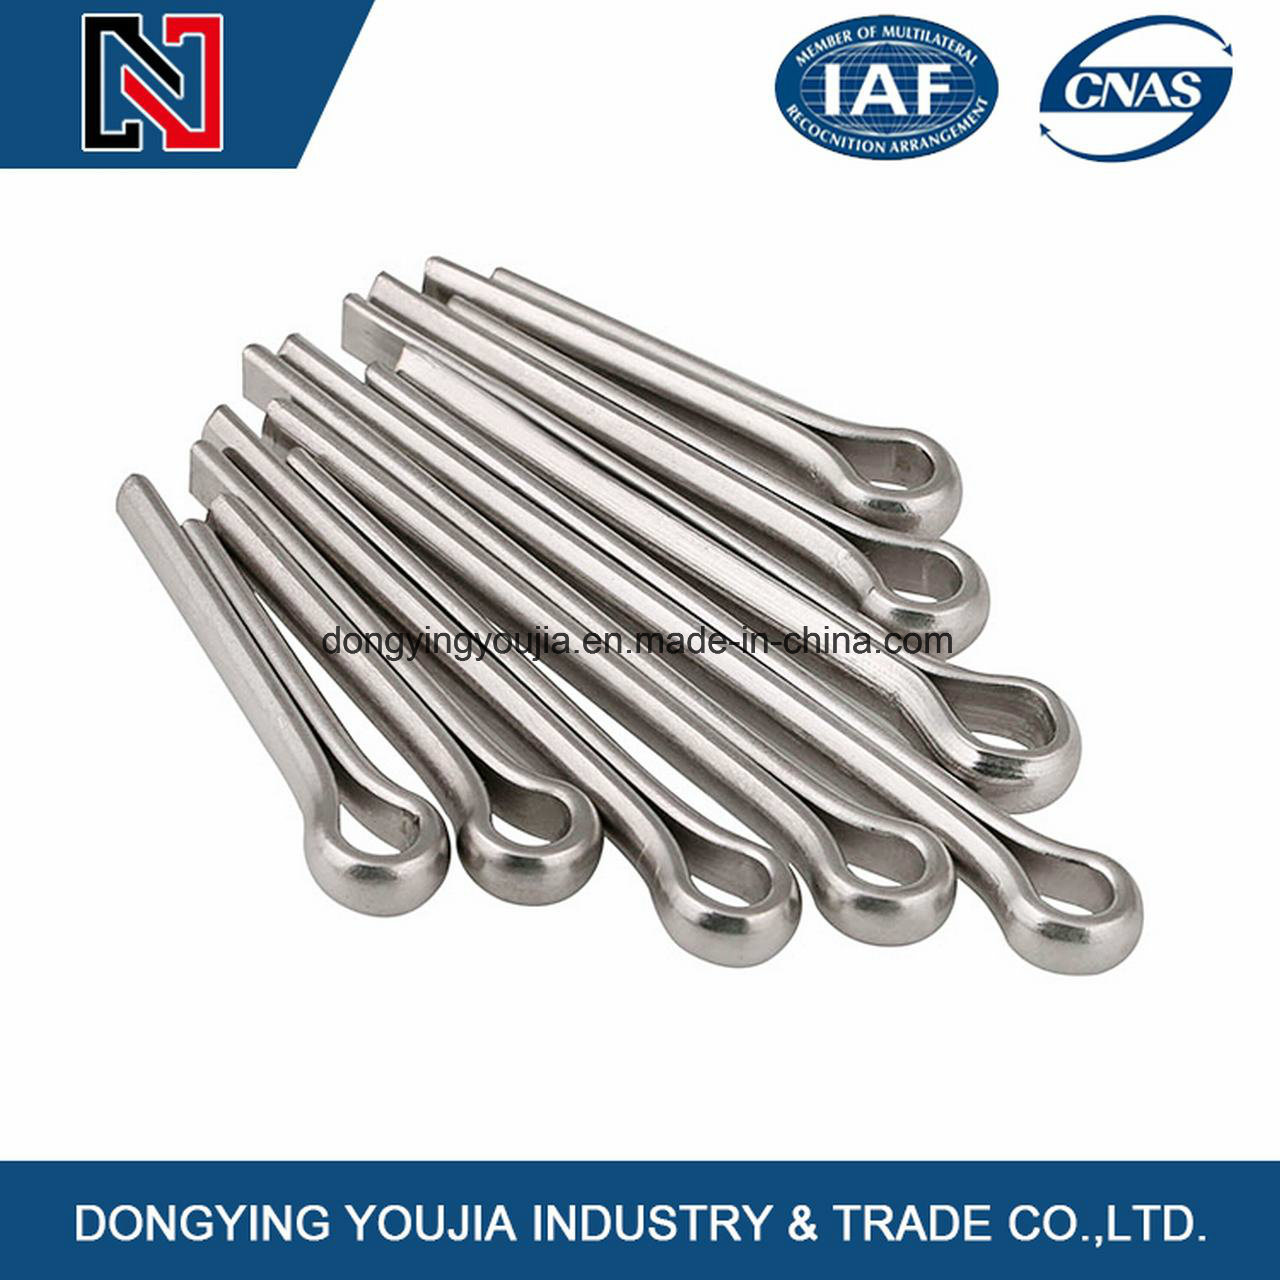 18-8 Stainless Steel Cotter Pins, Split (cotter) Pins